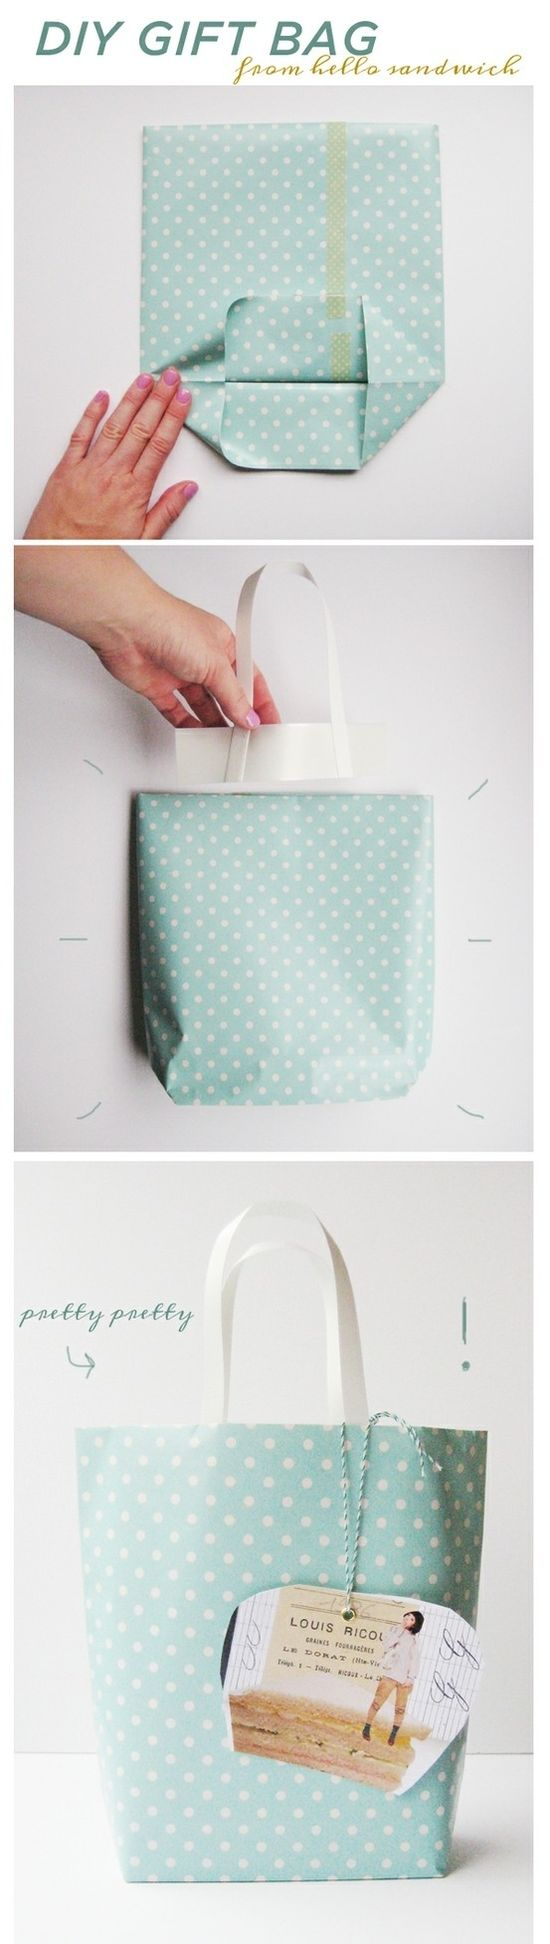 Make your own gift bags